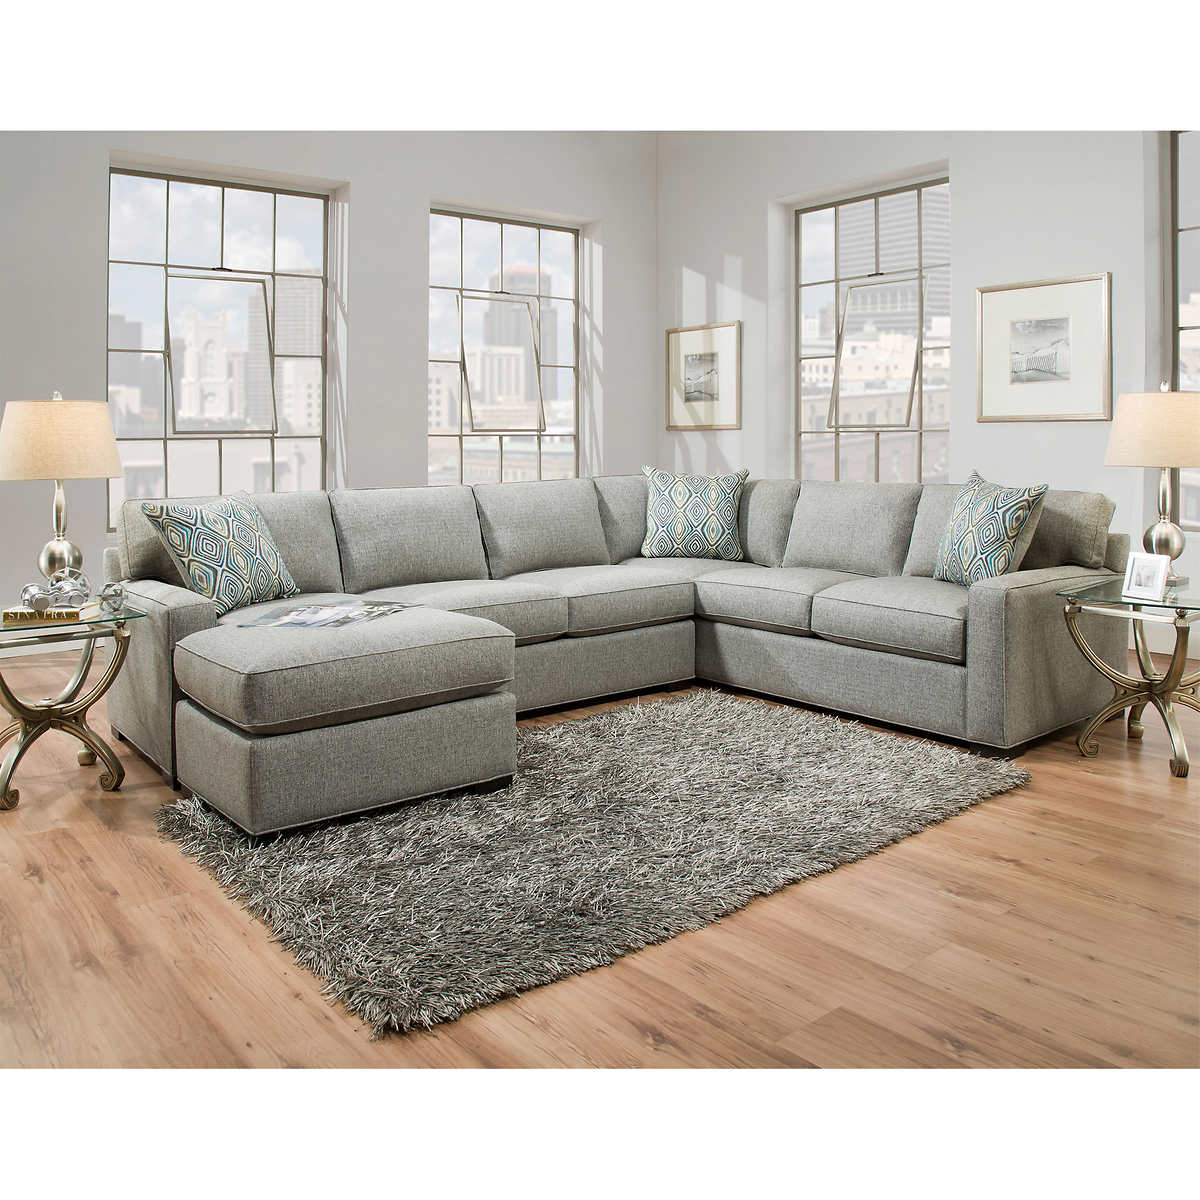 Two Loveseats In Living Room Fabric Sofas Sectionals